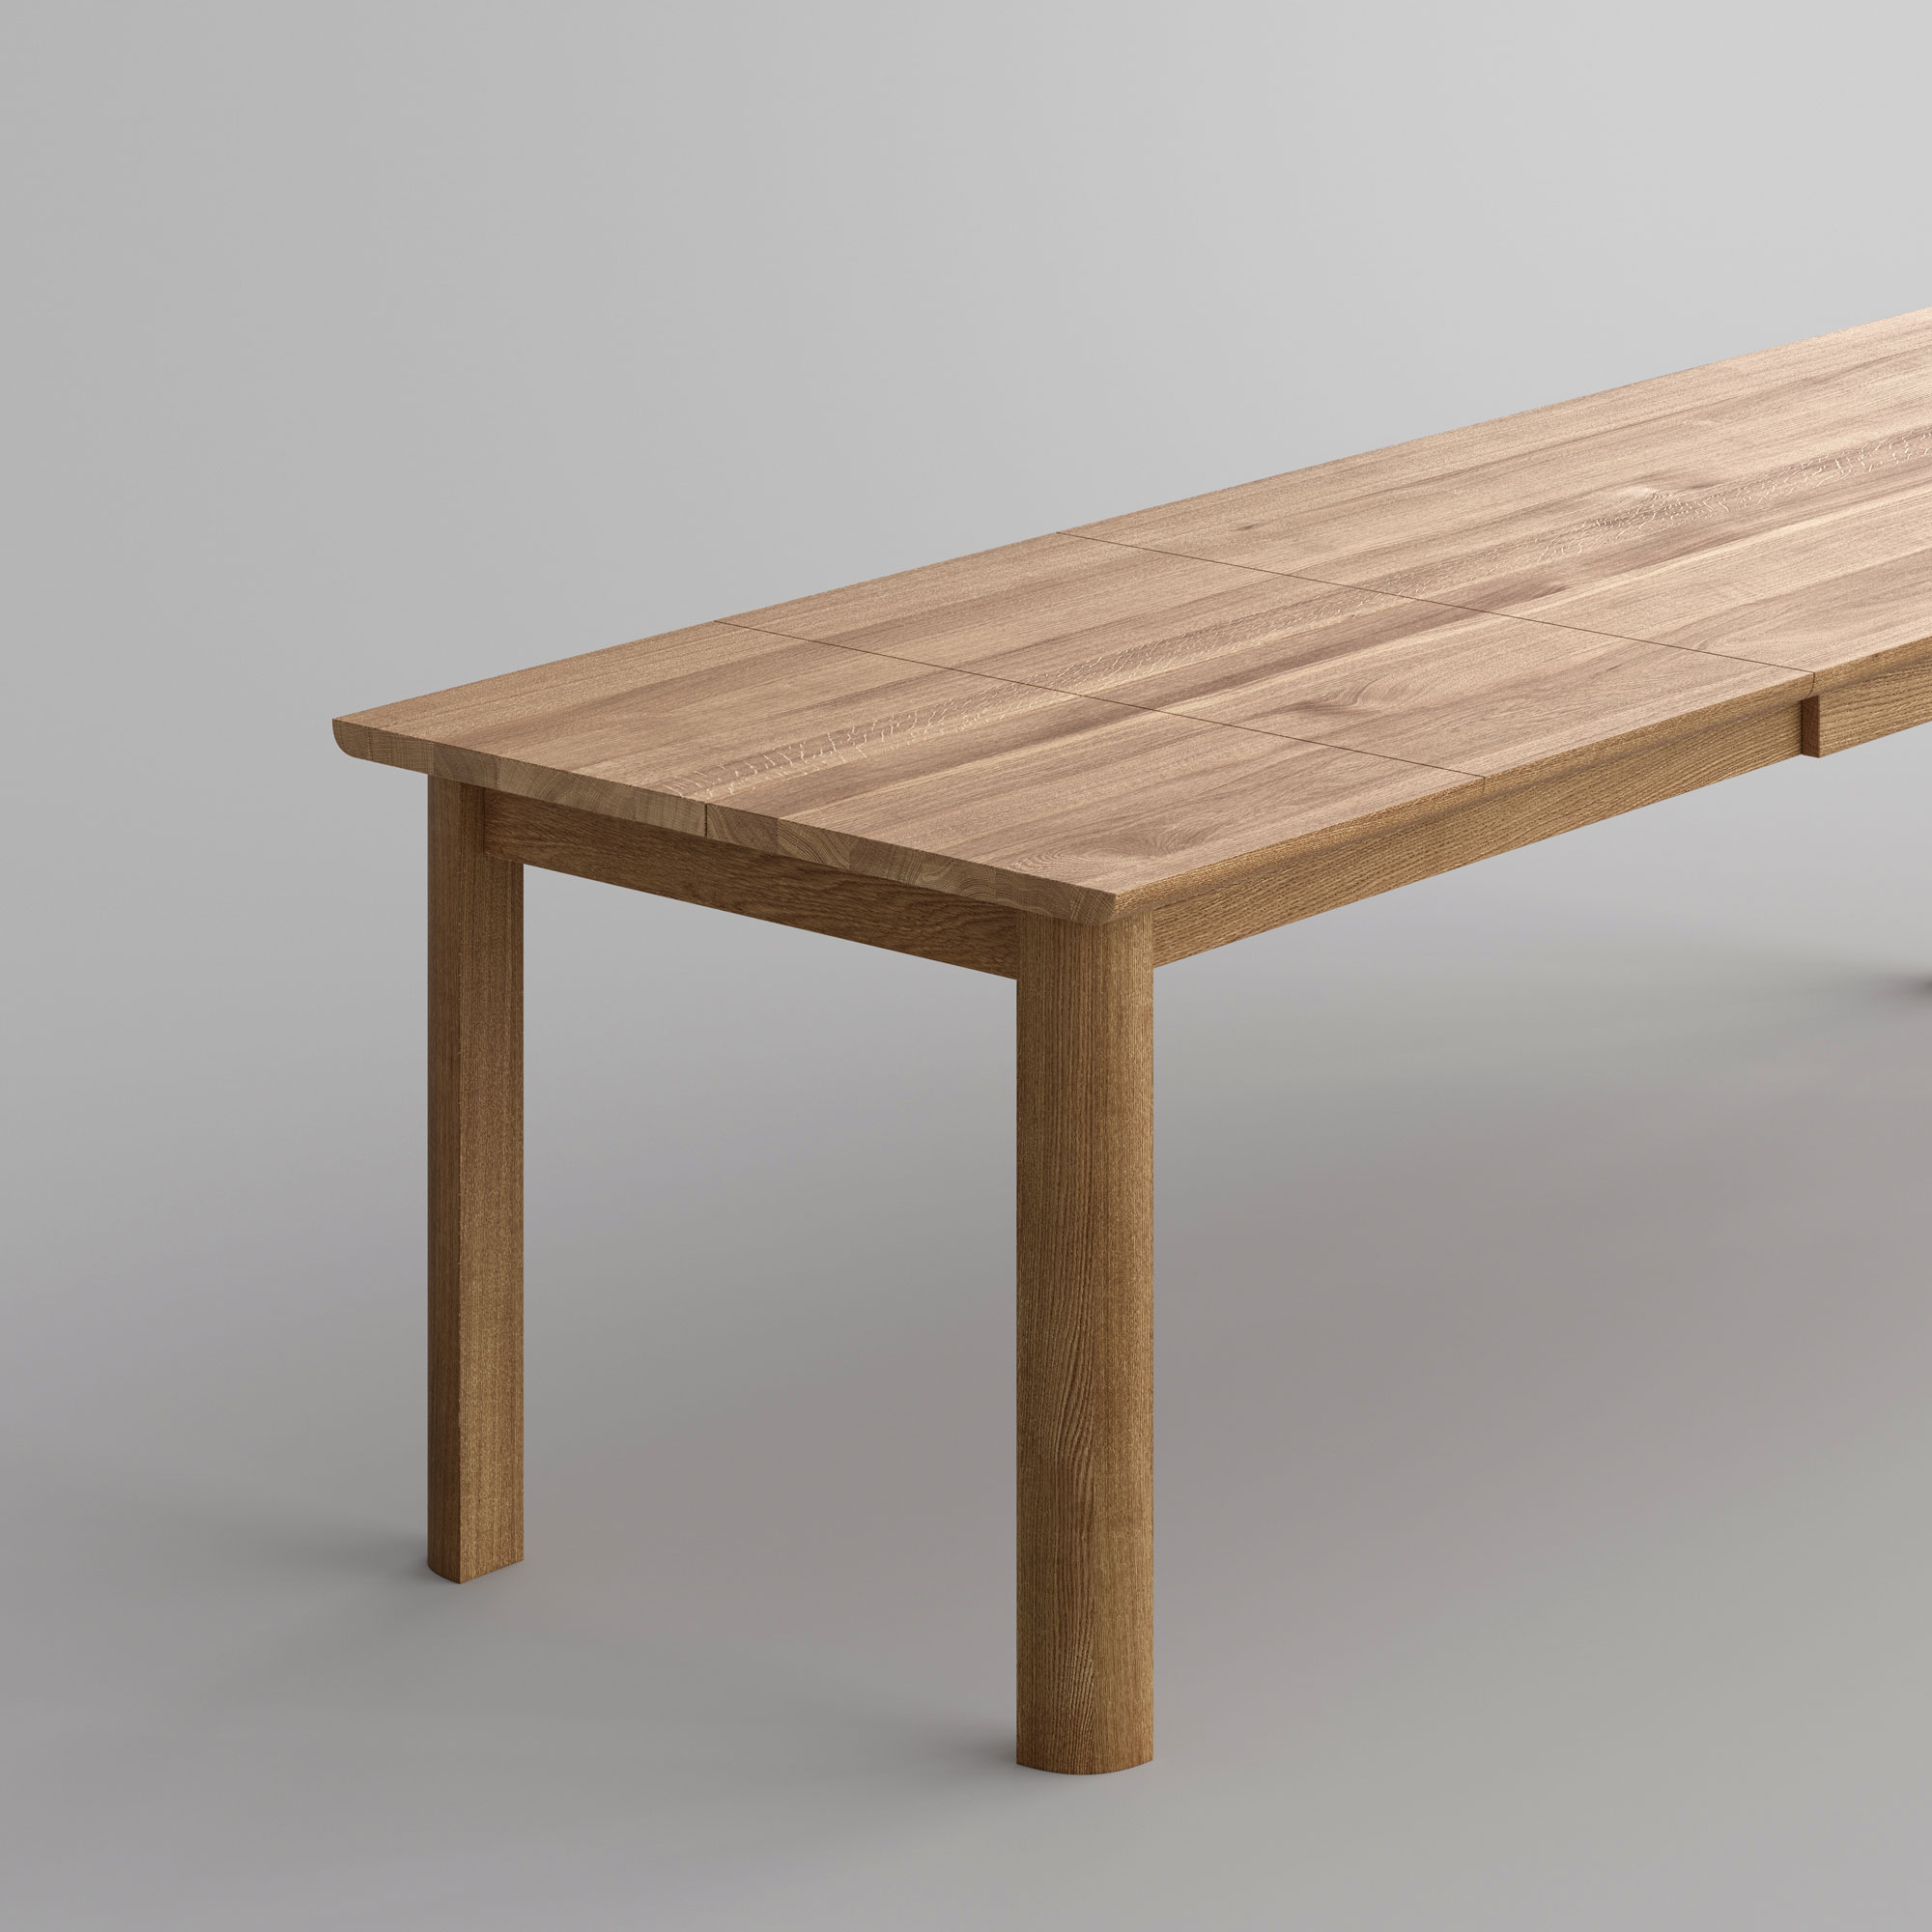 Extendable Dining Table VIVUS BUTTERFLY Cam2-SP2 custom made in solid wood by vitamin design